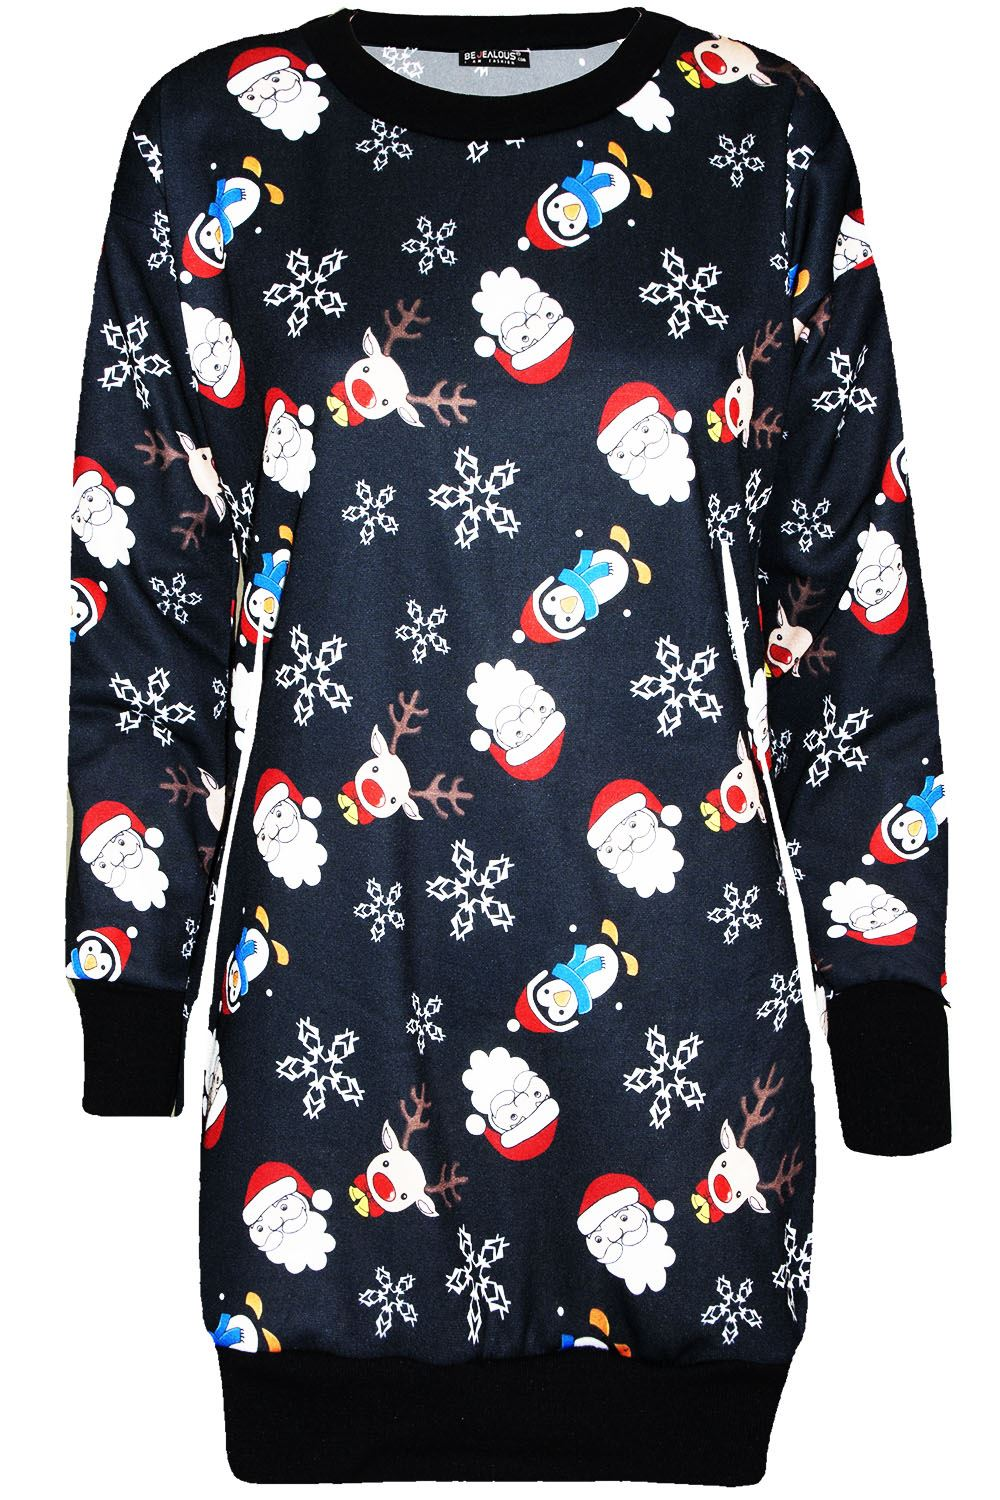 Ladies-Women-Knitwear-Snowman-Snowflake-Christmas-Fleece-Santa-Xmas-Tunic-Jumper